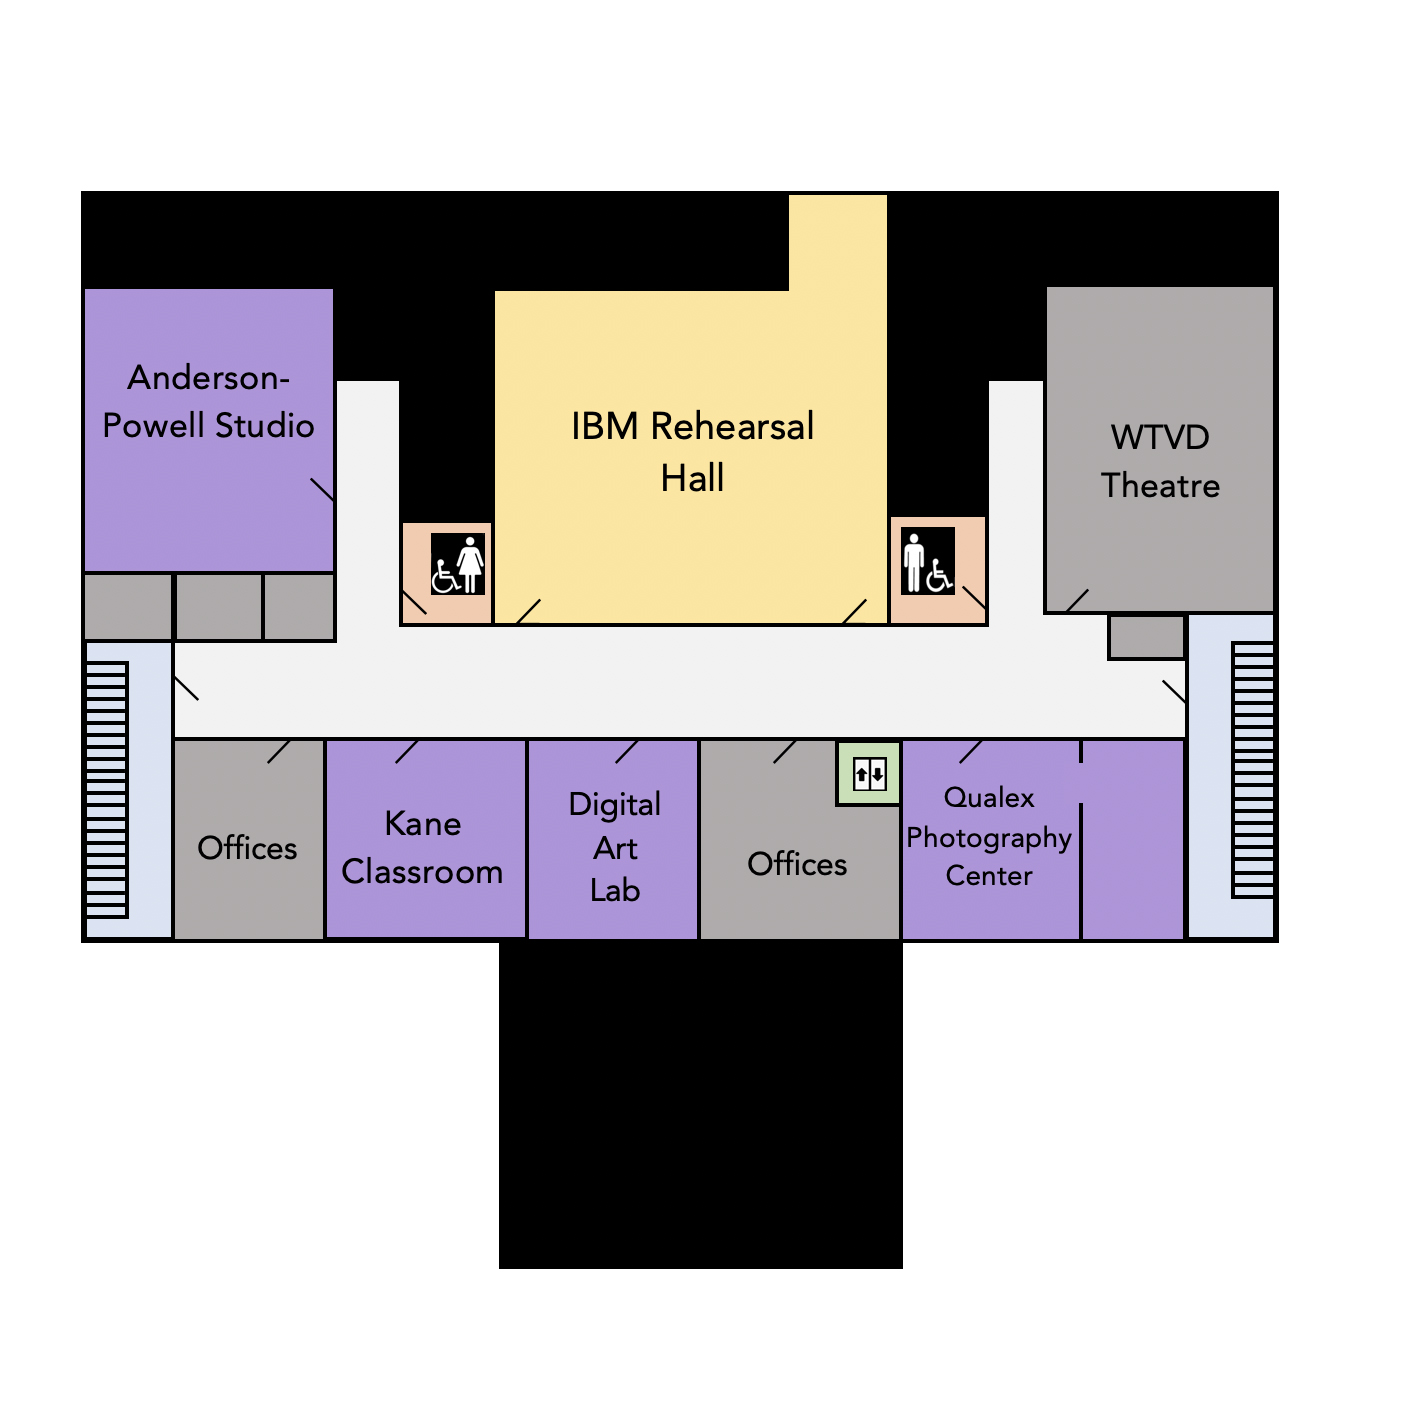 Floor plan of the lower level of the DAC building